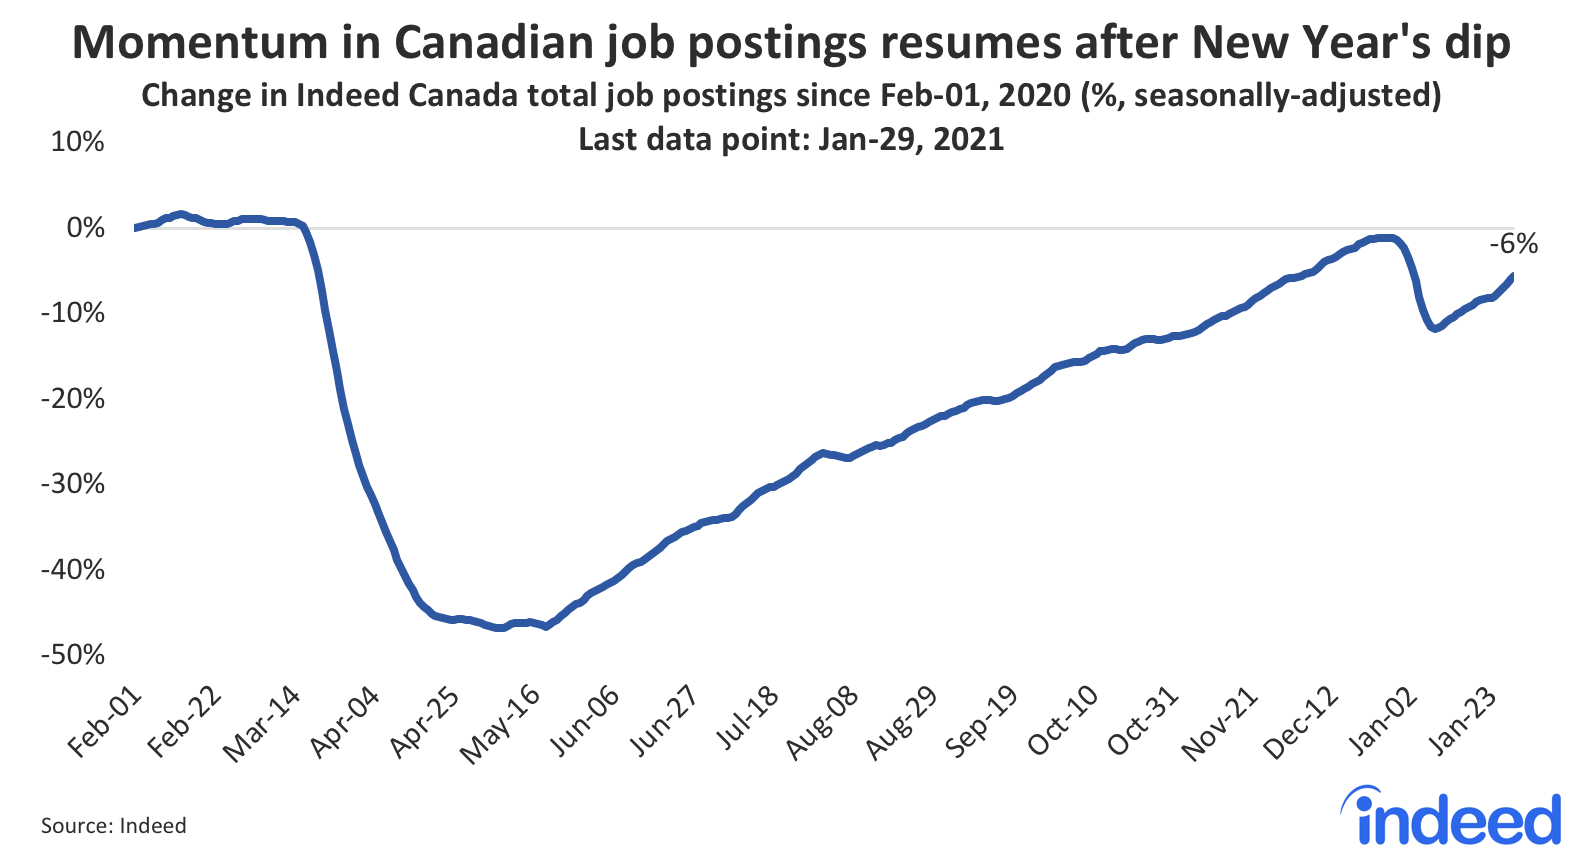 Line graph showing momentum in Canadian job postings resumes after New Year's dip